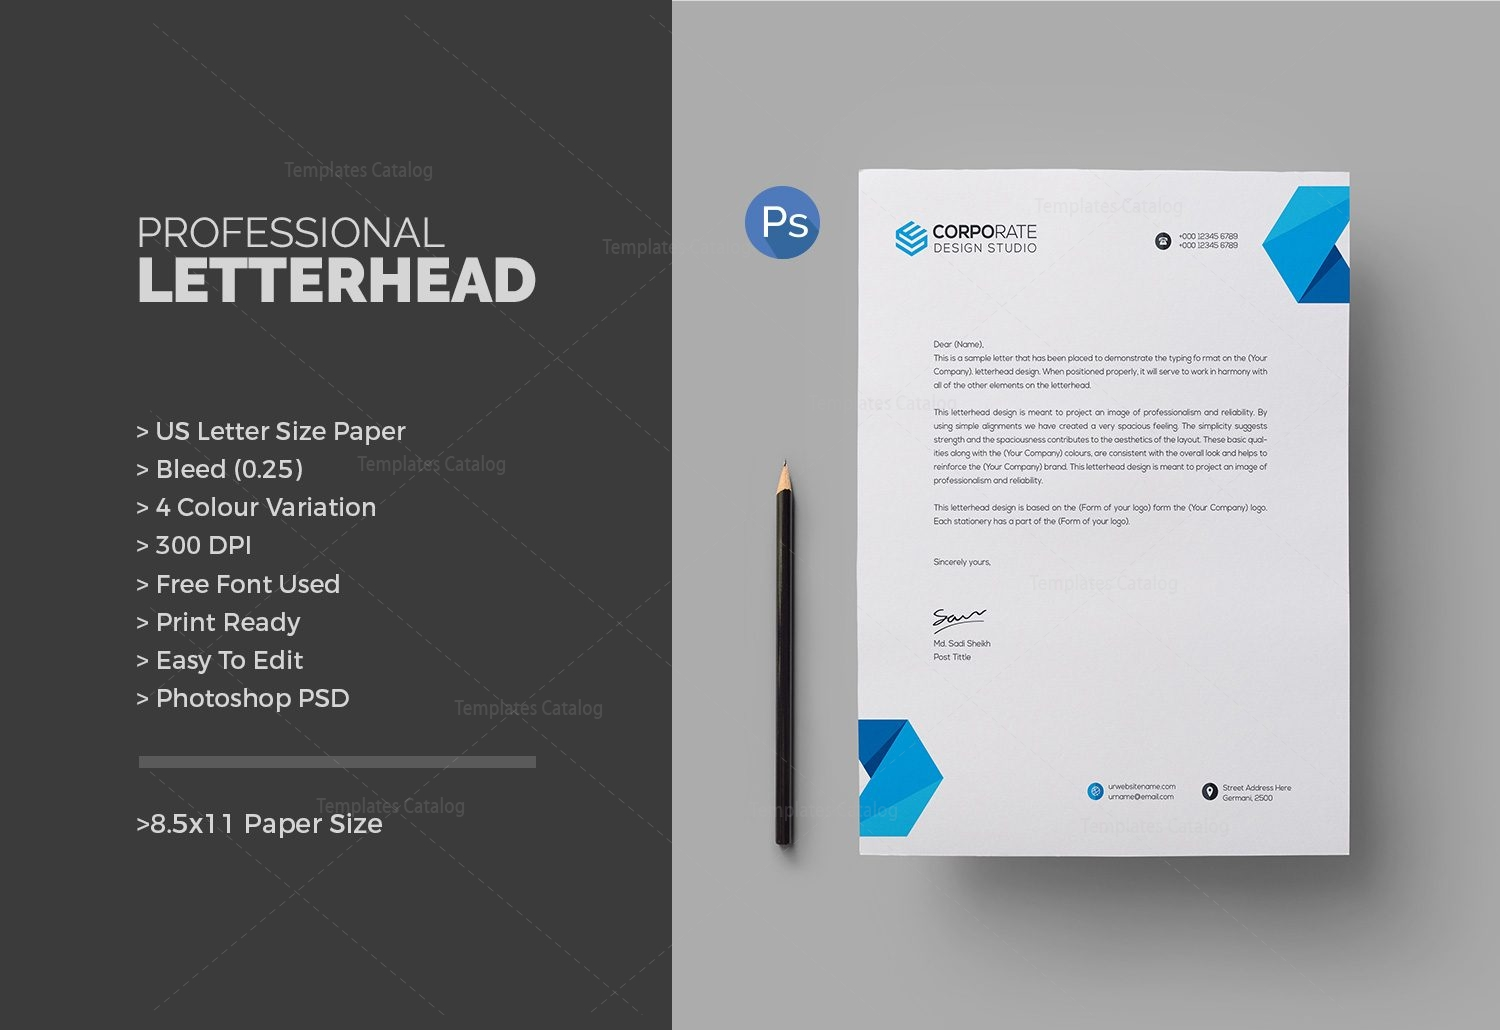 Psd corporate letterhead template 000401 template catalog psd corporate letterhead template 1 spiritdancerdesigns Image collections